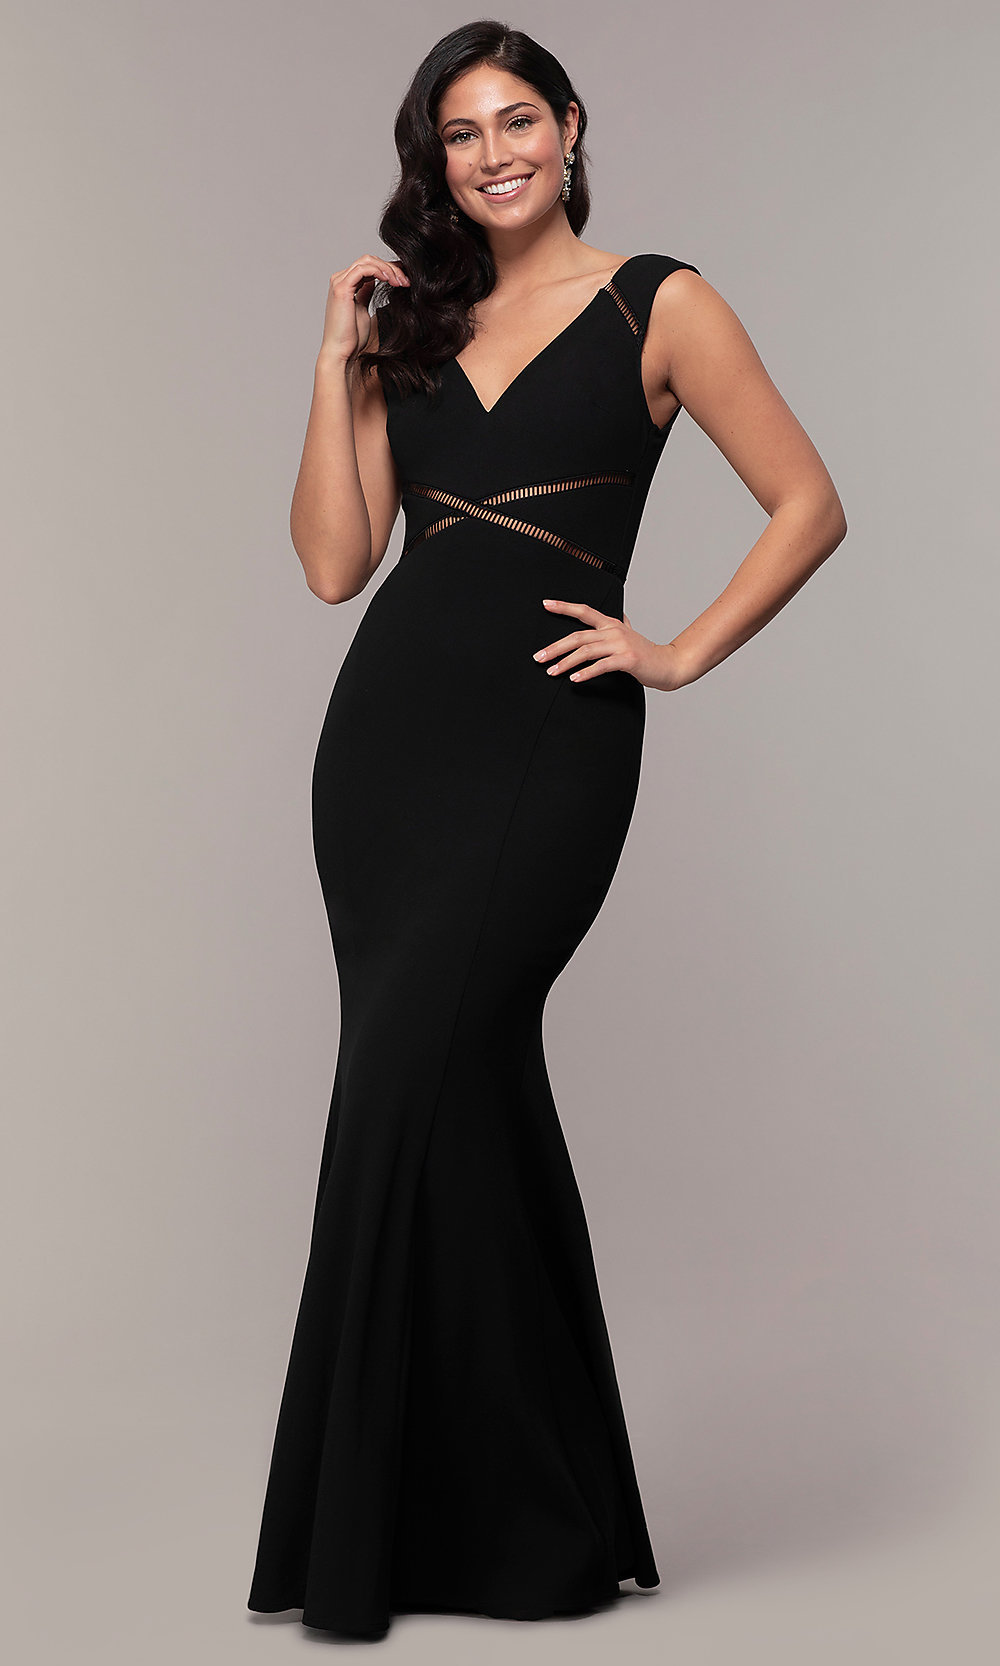 b04426fb453d0 Image of long v-neck mermaid Simply prom dress with open back. Style  Tap  to expand